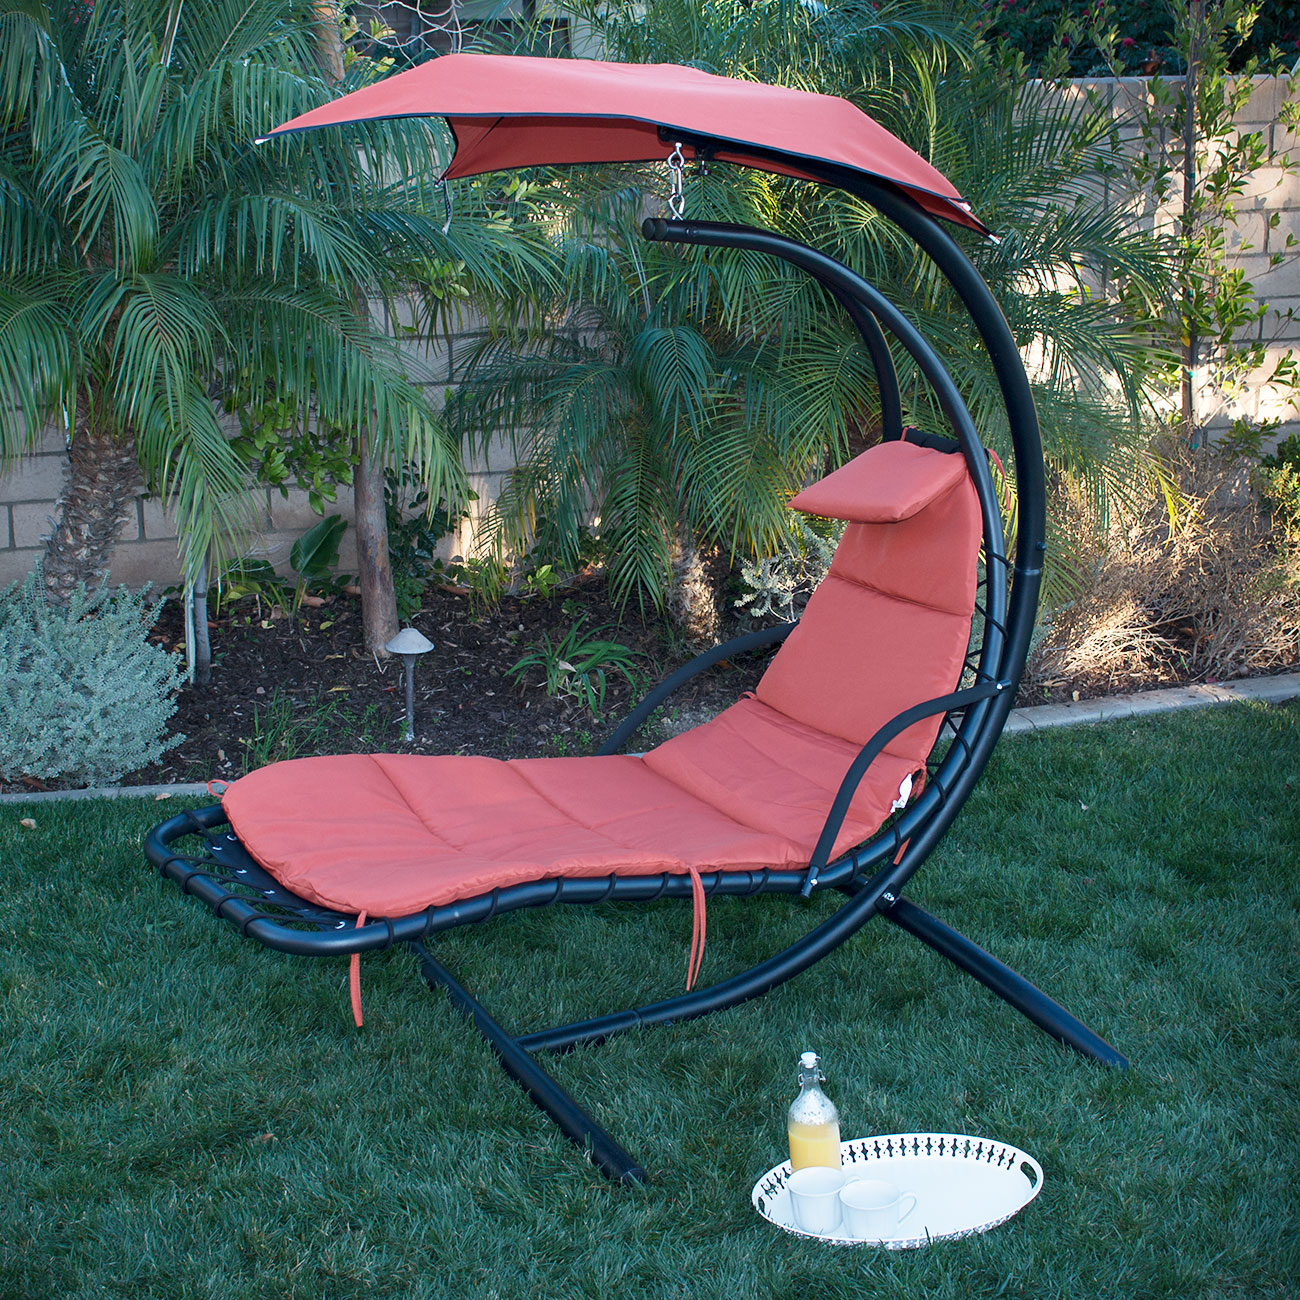 hammock chair with canopy small table and chairs set for kitchen new swing hanging chaise lounger